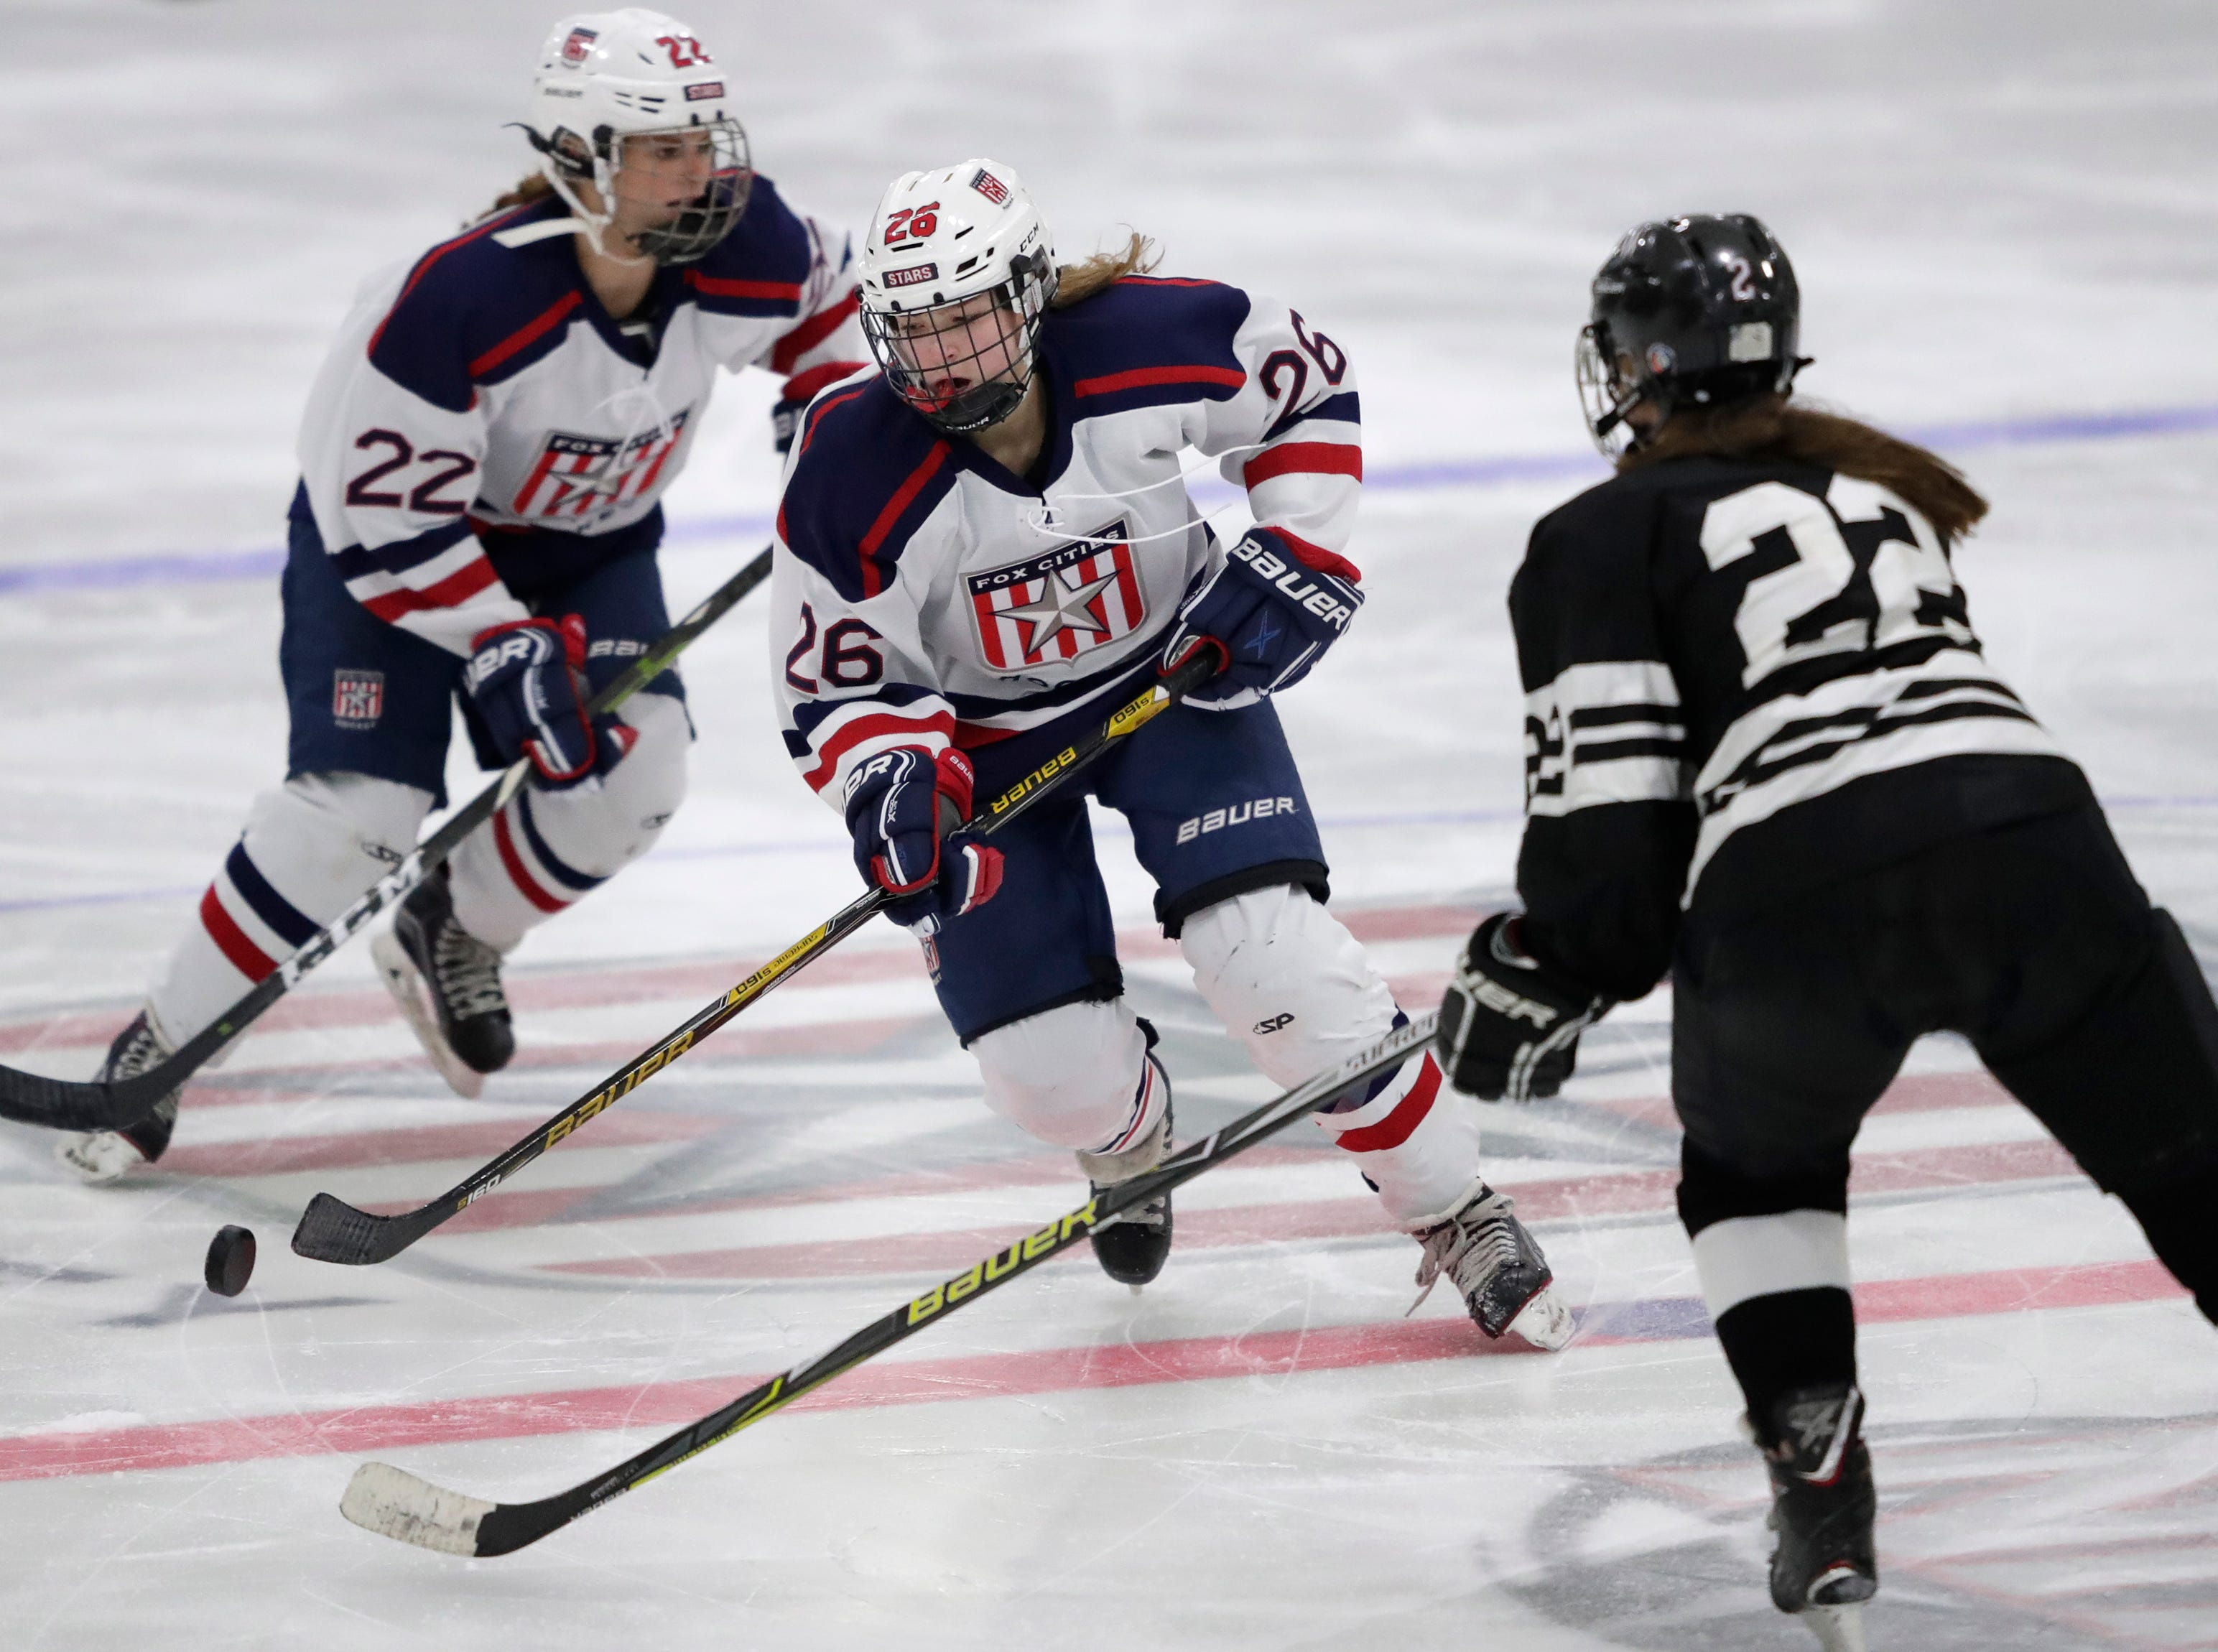 Fox Cities Stars' McKayla Zilisch (26) looks to pass the puck against the Warbirds' Drew Deanovich (22) during their girls hockey game Thursday, January 10, 2019, at Tri-County Ice Arena in Fox Crossing, Wis. 